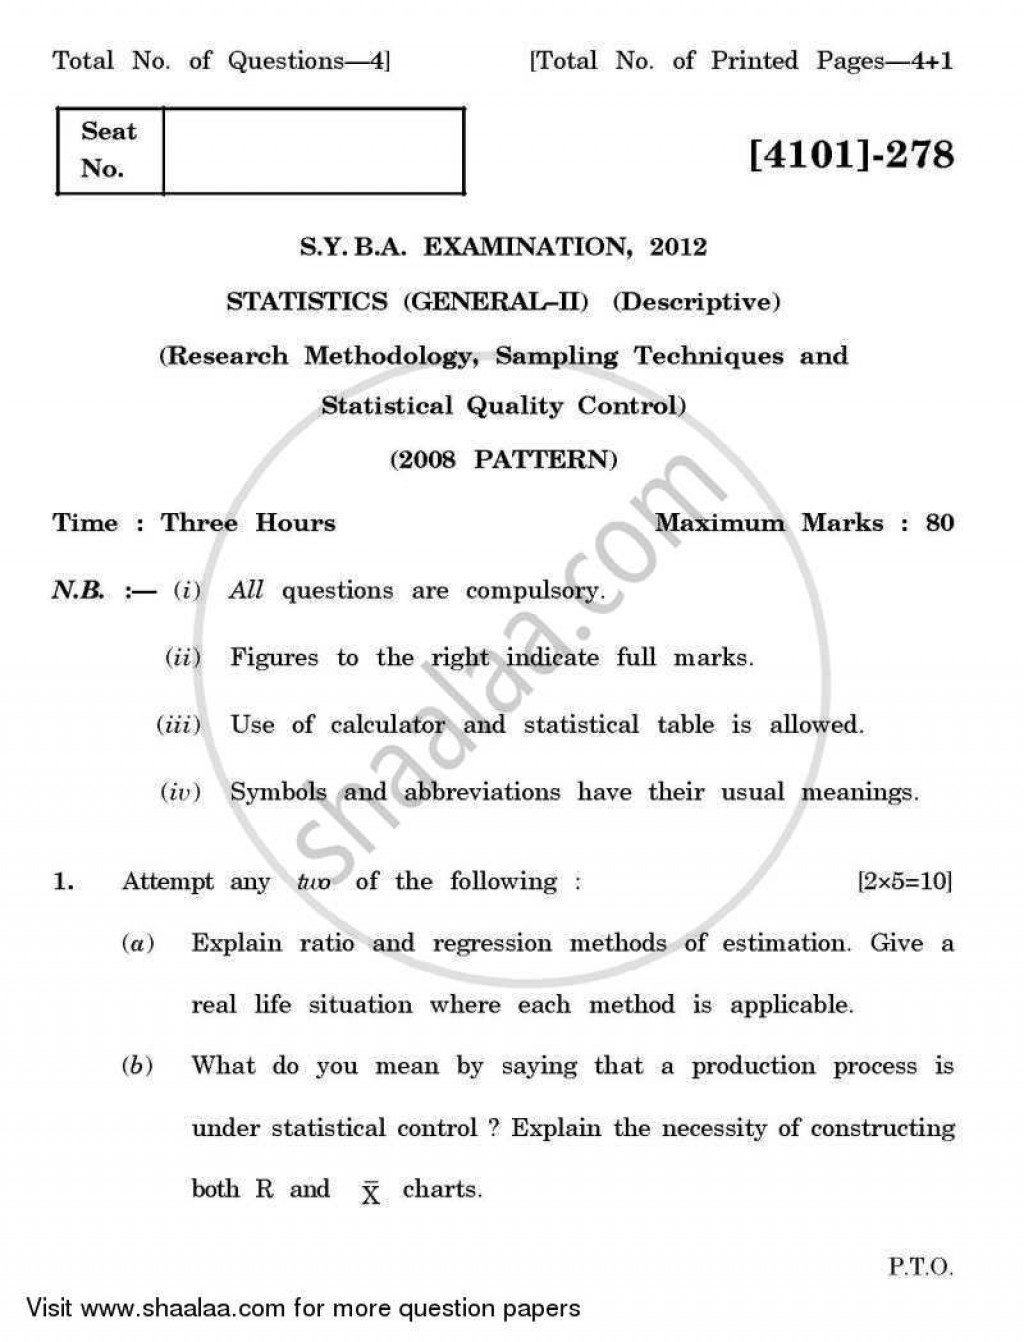 014 University Of Pune Bachelor Statistics General Paper Research Methodology Sampling Techniques Statistical Quality Control Syba 2nd Year 2012 25713754a7140480982090cf66c10c20 Impressive Sample For Writing Pdf Large